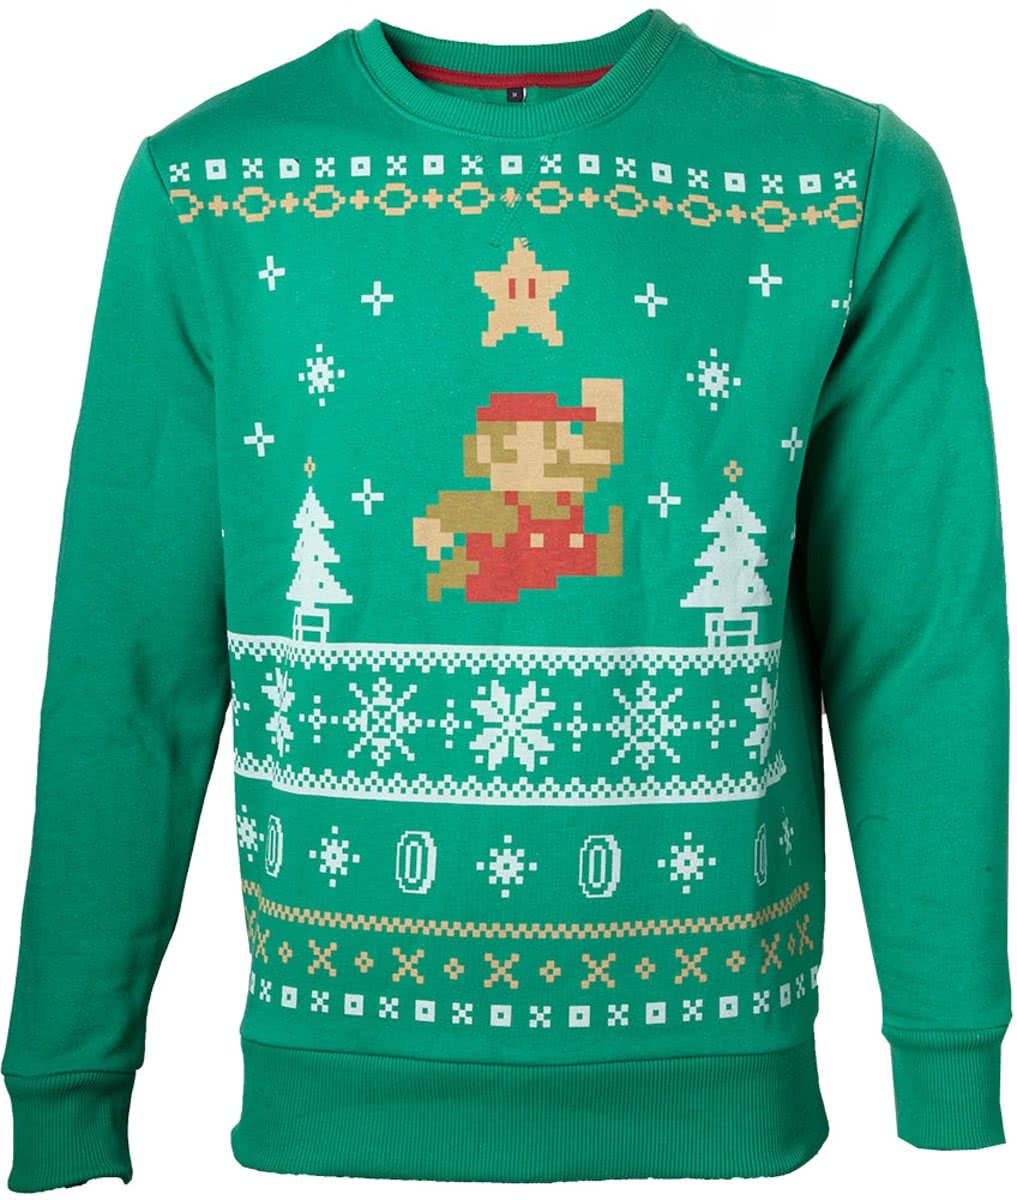 NINTENDO Sweater Jumping Mario Christmas (XL)